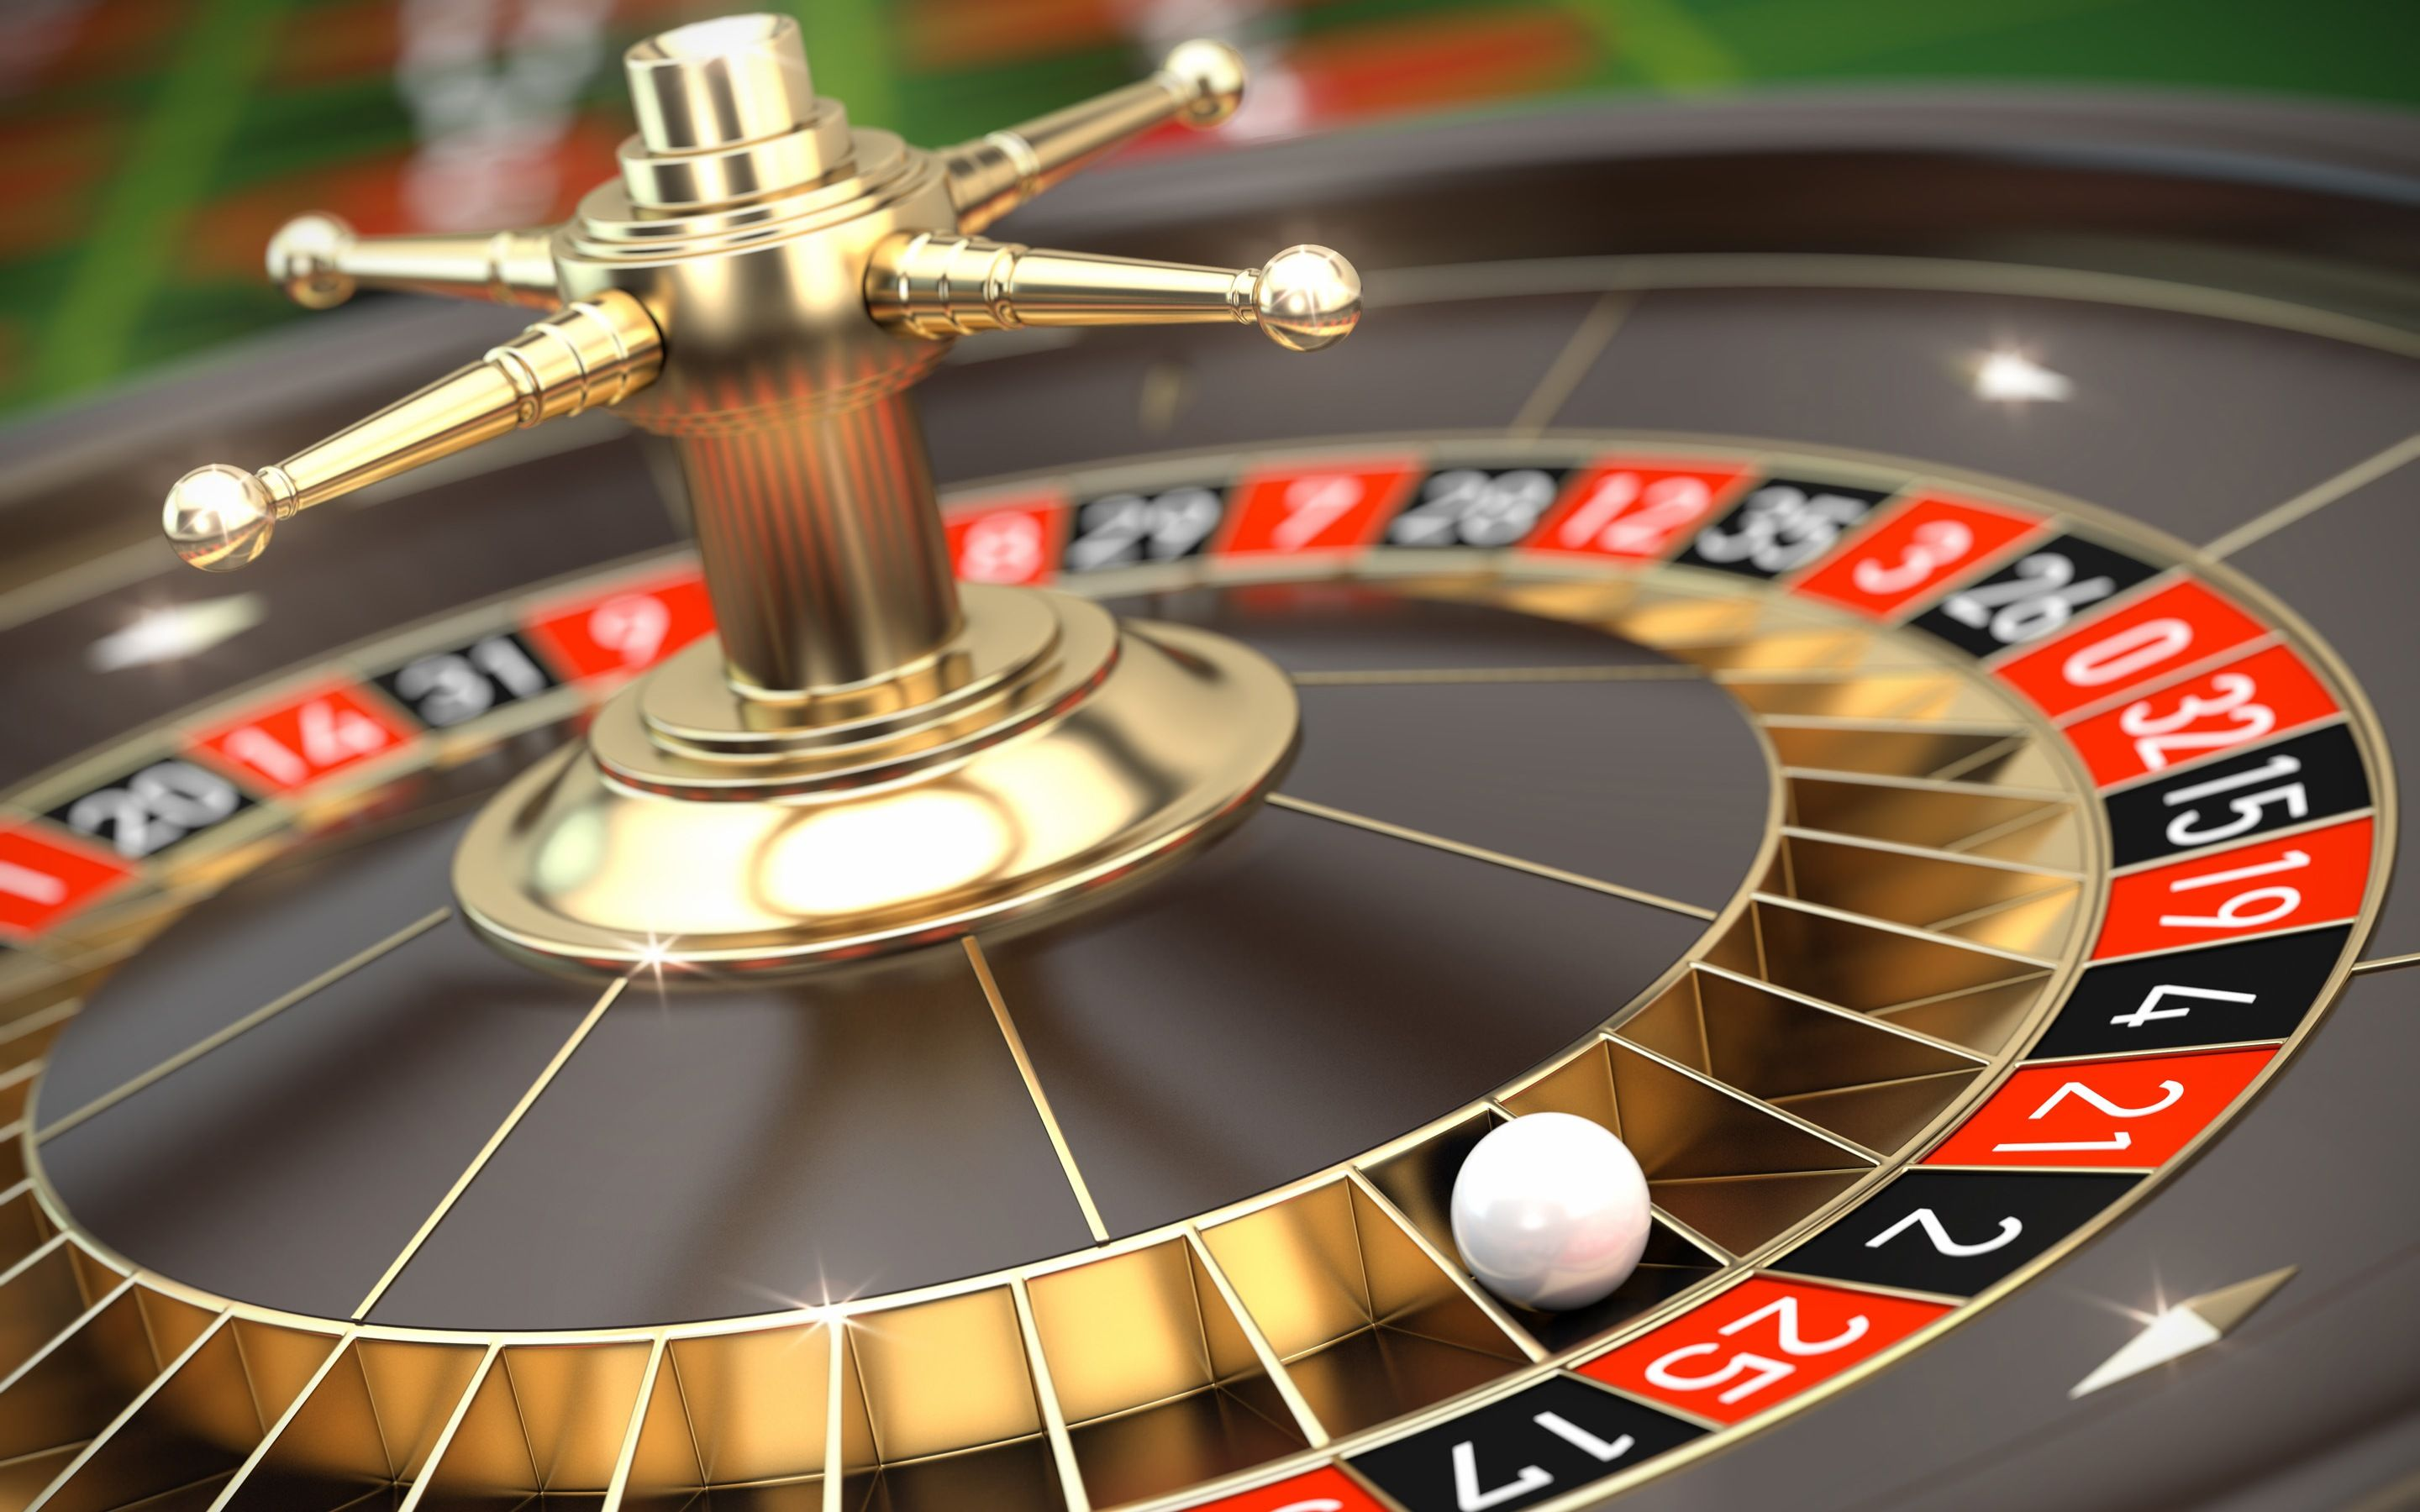 roulette wheel with ball